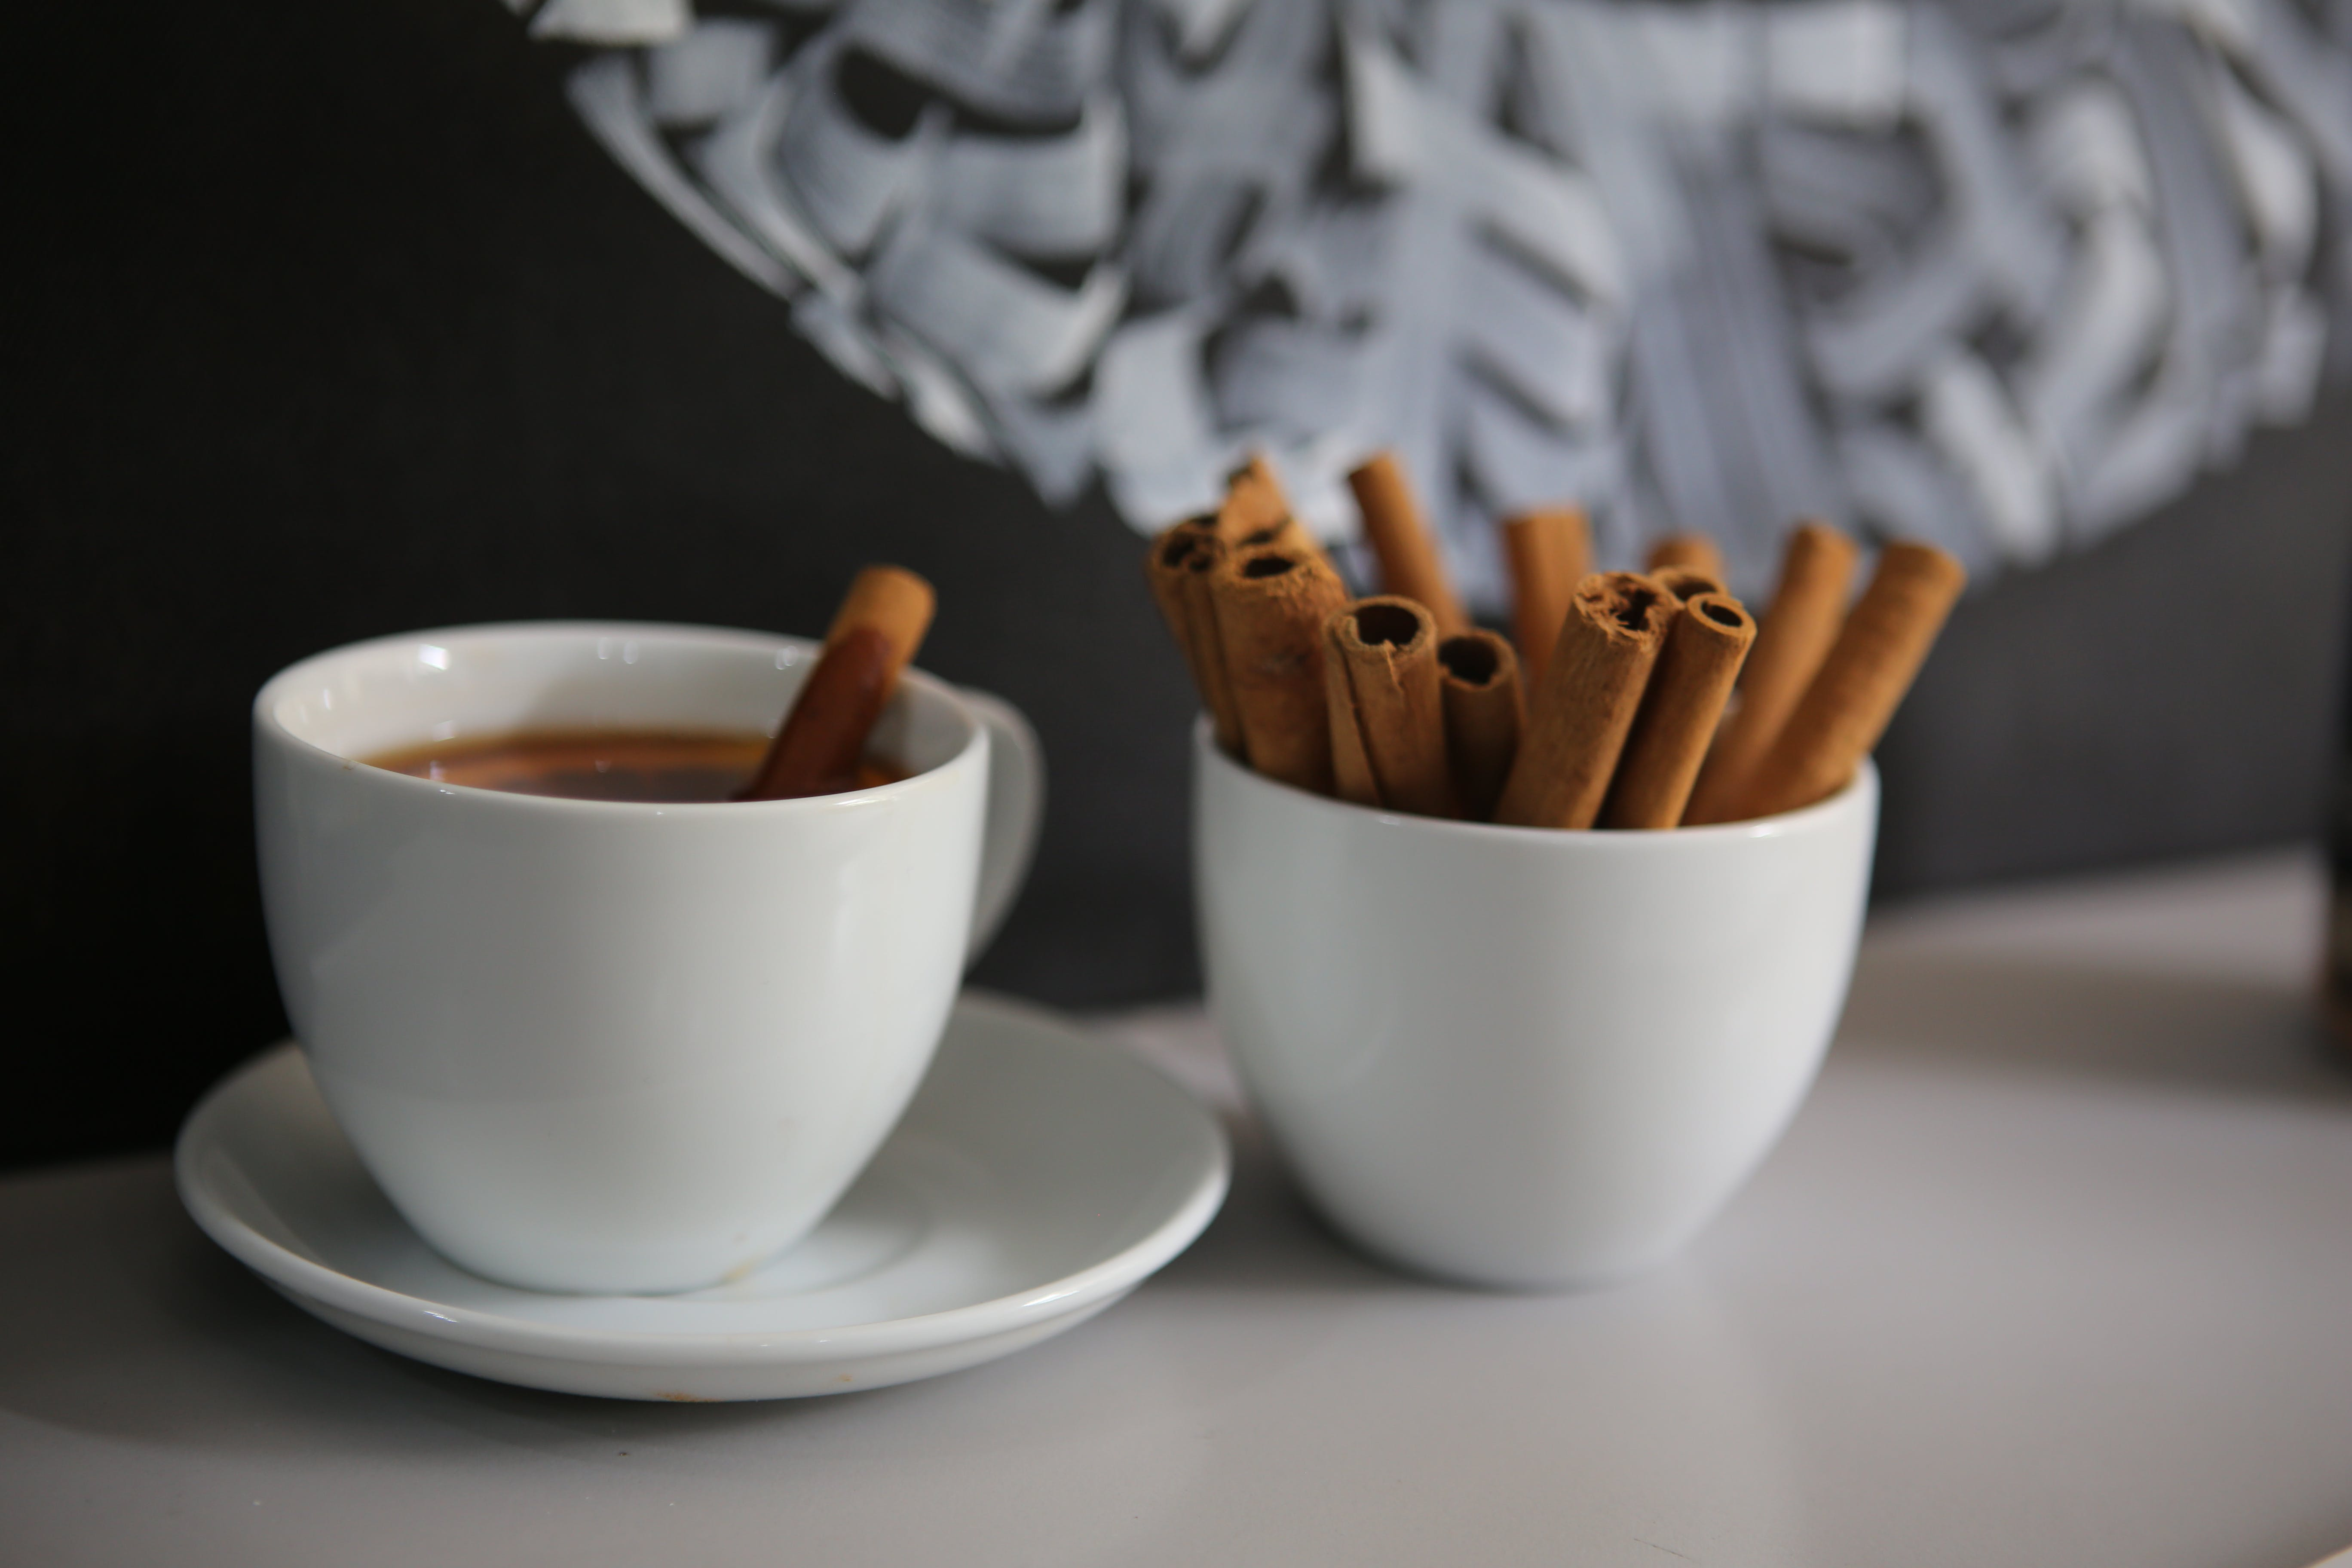 Chocolate Sticks on Two White Ceramic Cups